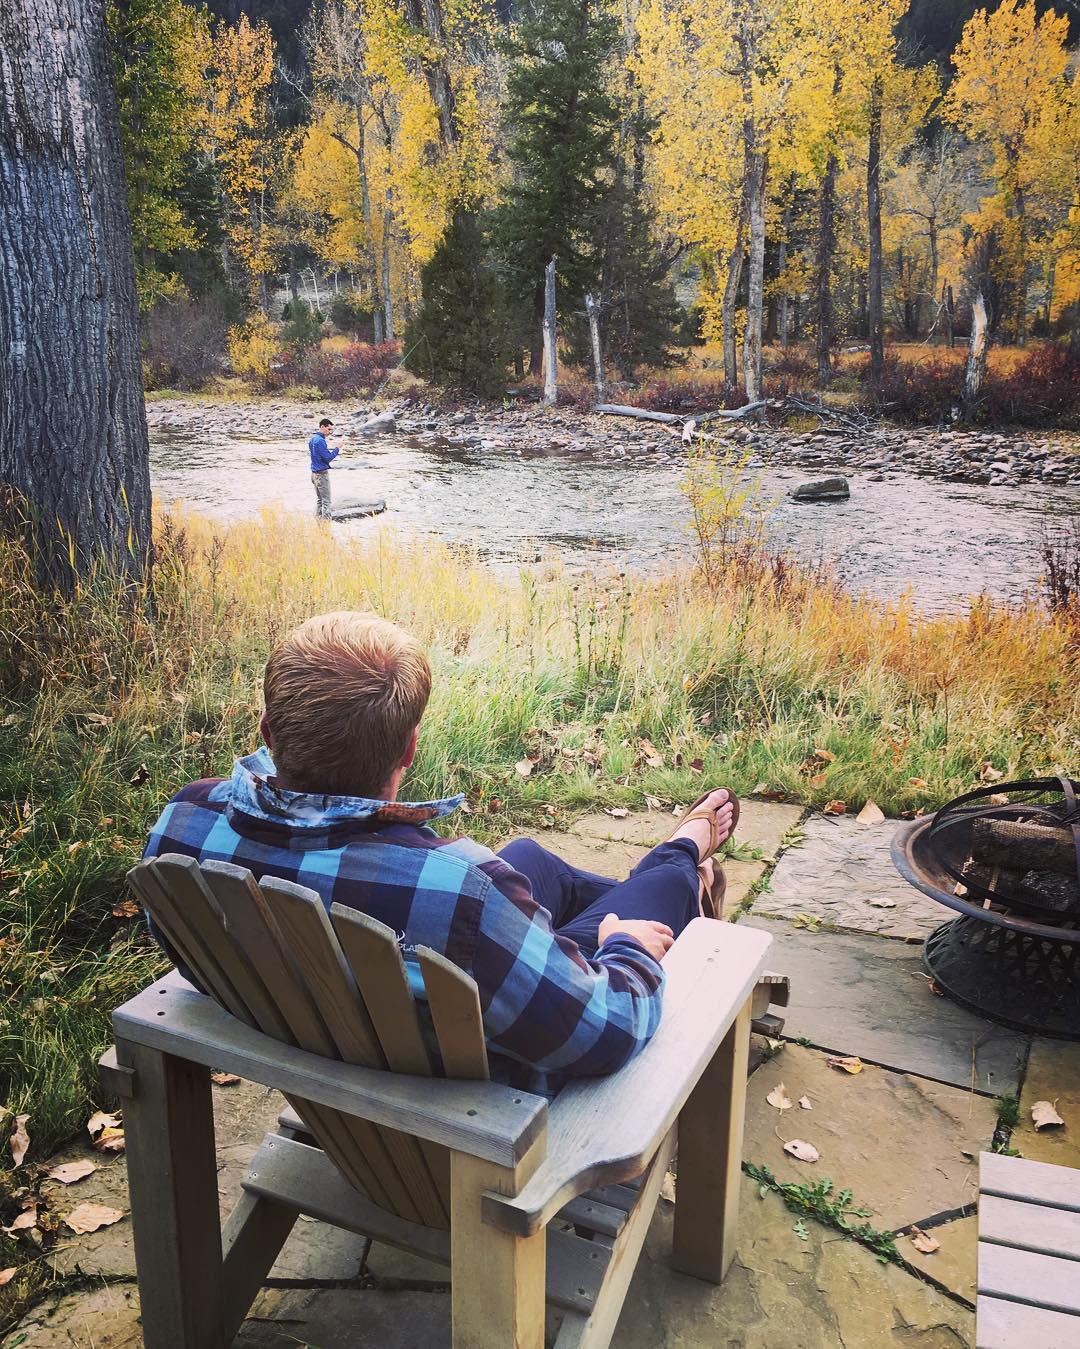 Taking it all in. #fall #montana #flyfishing #relaxed #flannel #pladra